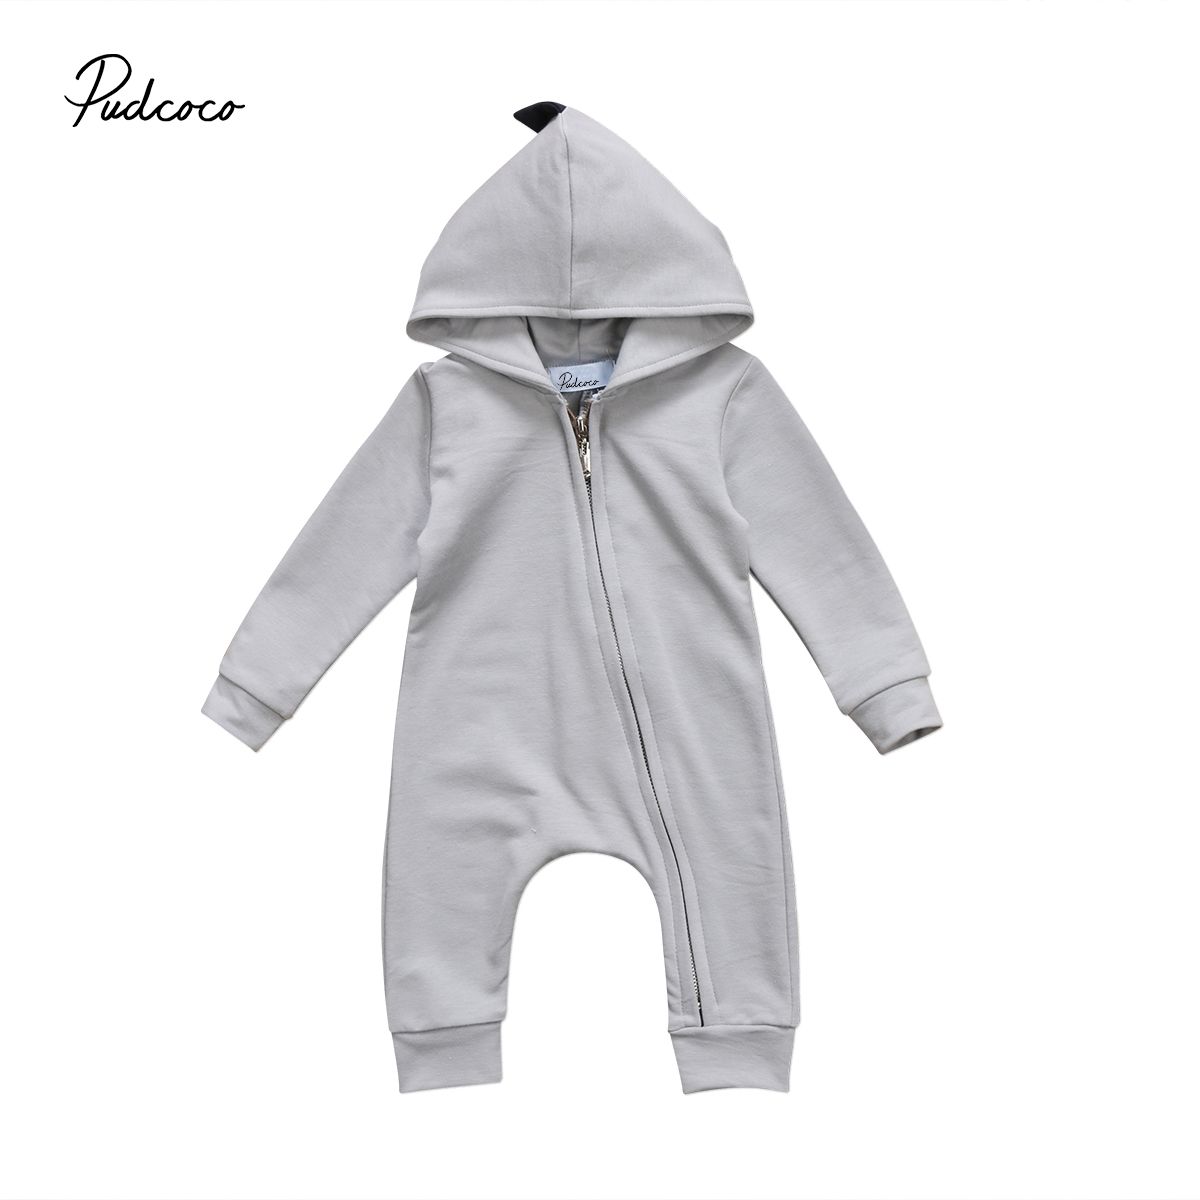 Mother & Kids Pudcoco Baby Girls Romper Hooded Dinosaur Rompers Winter Warm Kids Girls Clothes Cute Jumpsuit Dinosaur One Piece Set 2018 New Customers First Rompers